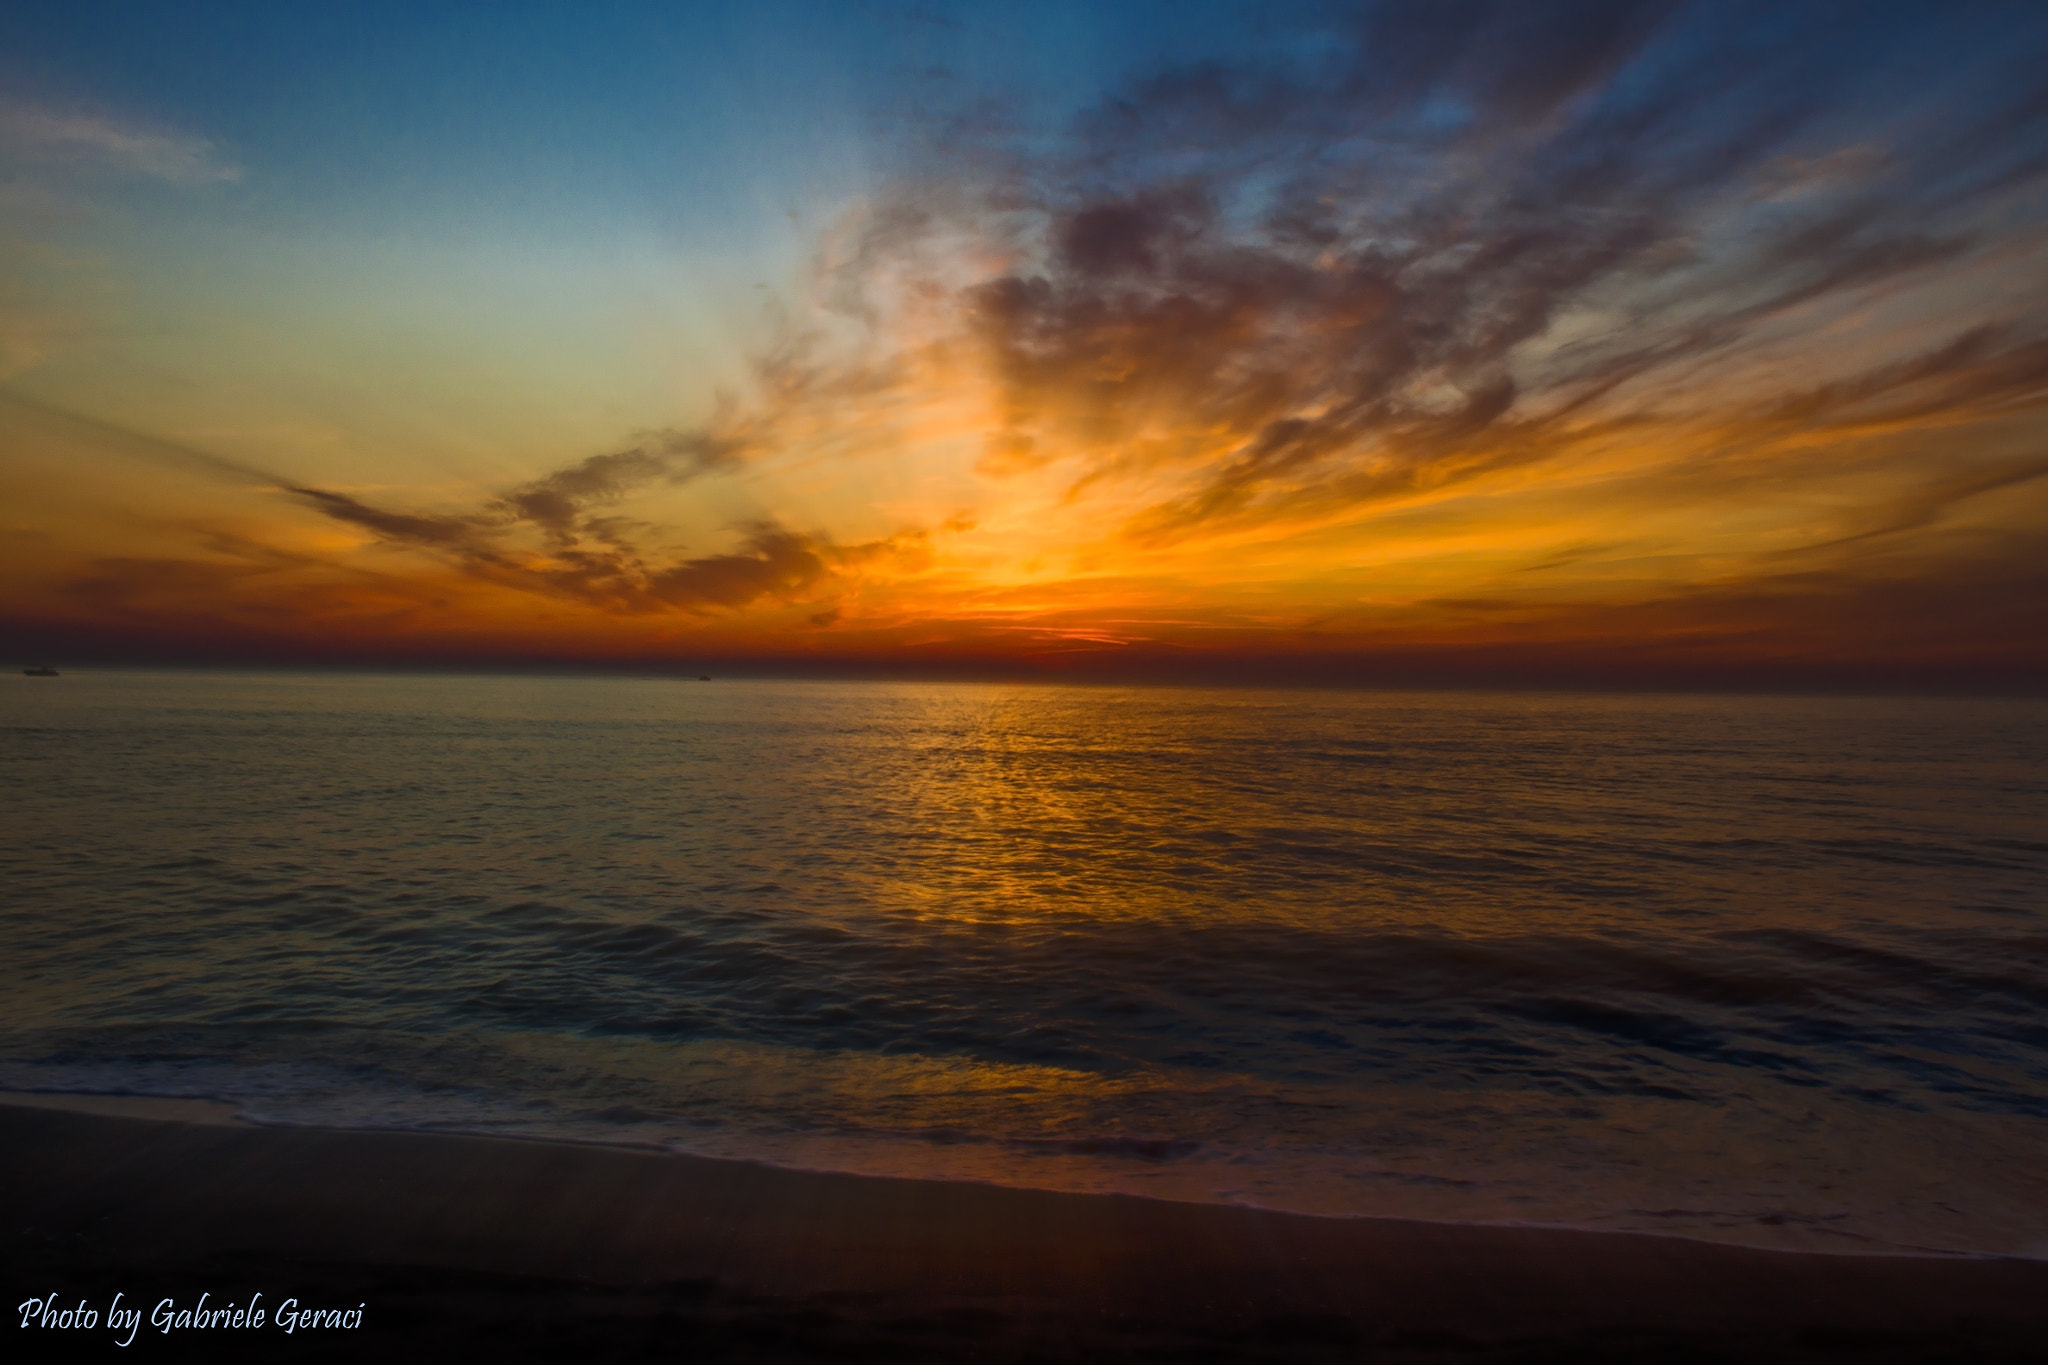 Photograph Tramonto sul mare by Gabriele Geraci on 500px